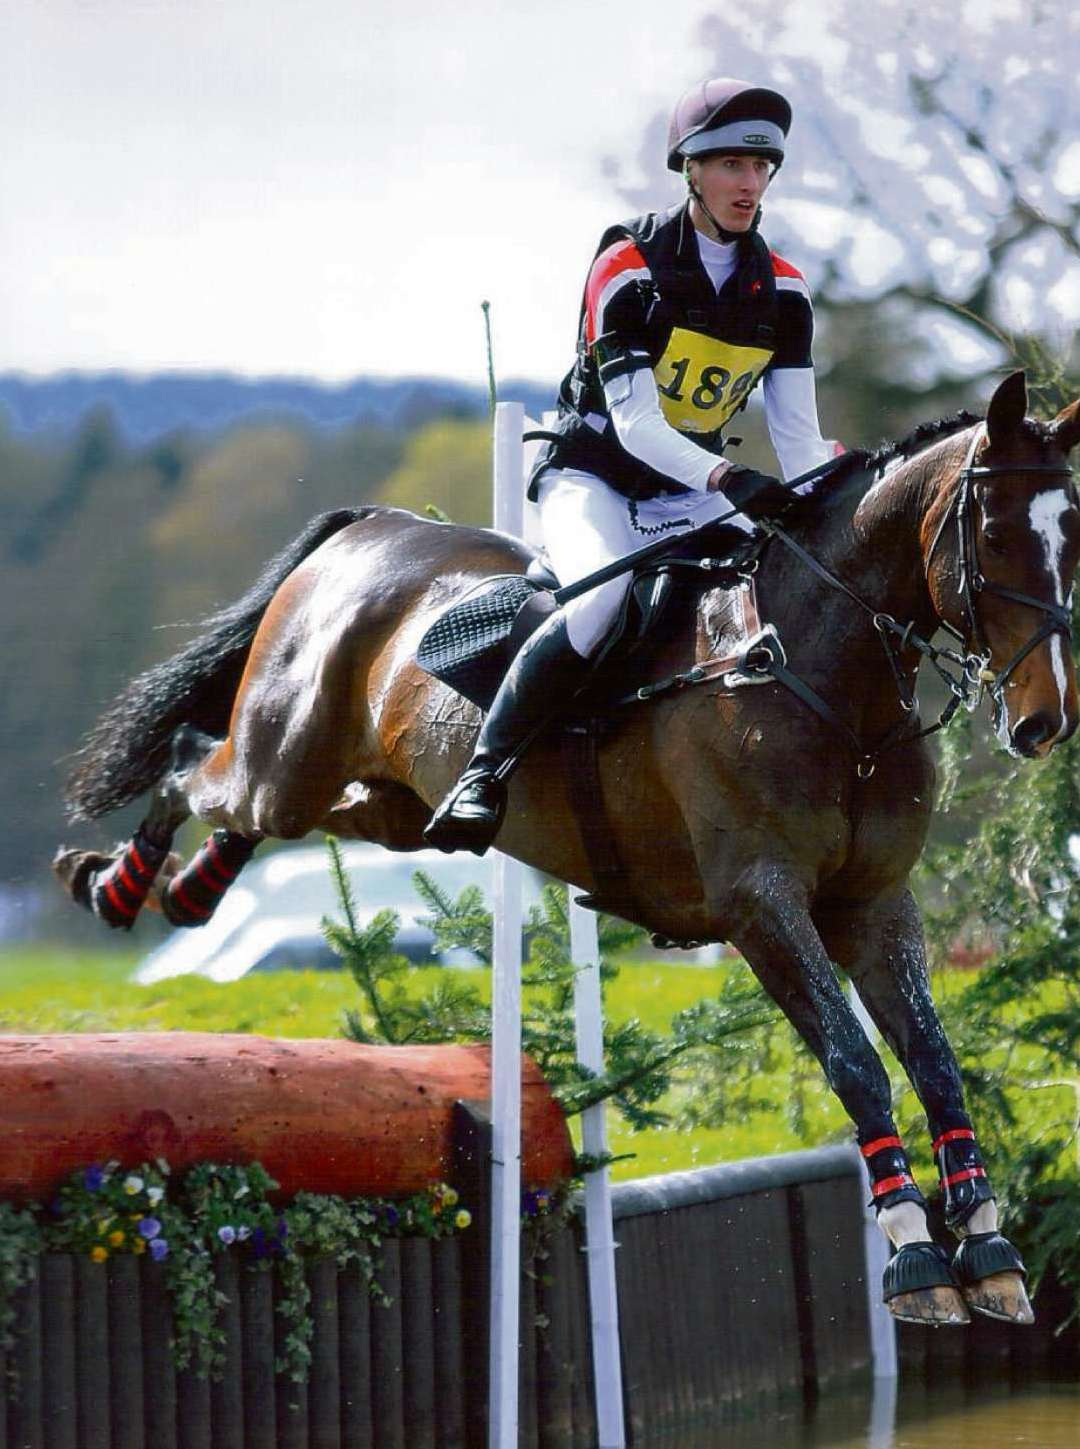 Fred Powell has been chosen to join Great Britain's under-18 junior eventing team.